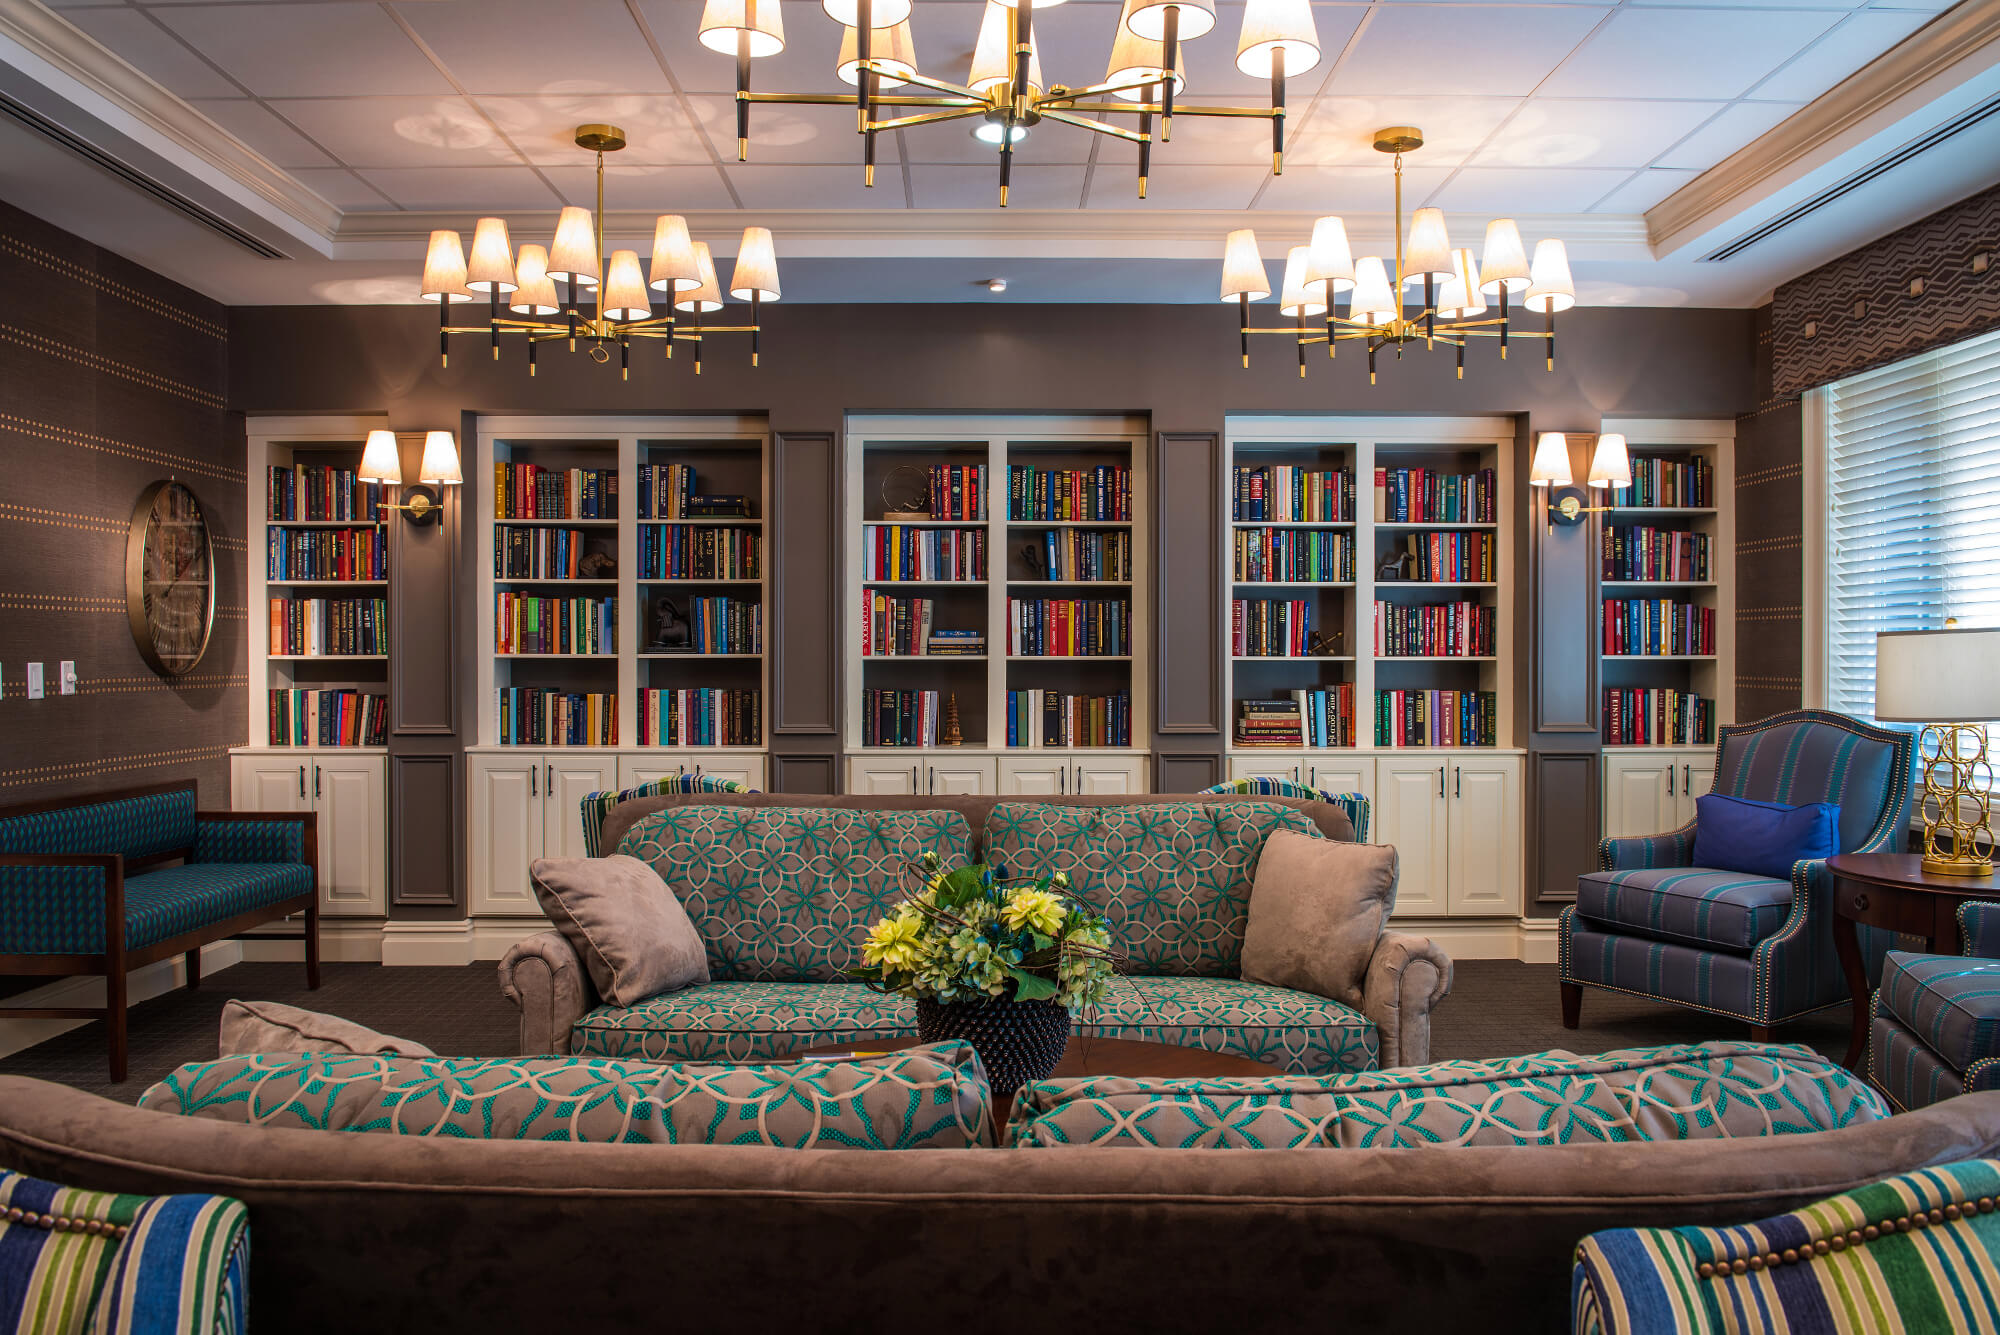 View of the couch and bookshelves in the Popham Library at The Ambassador